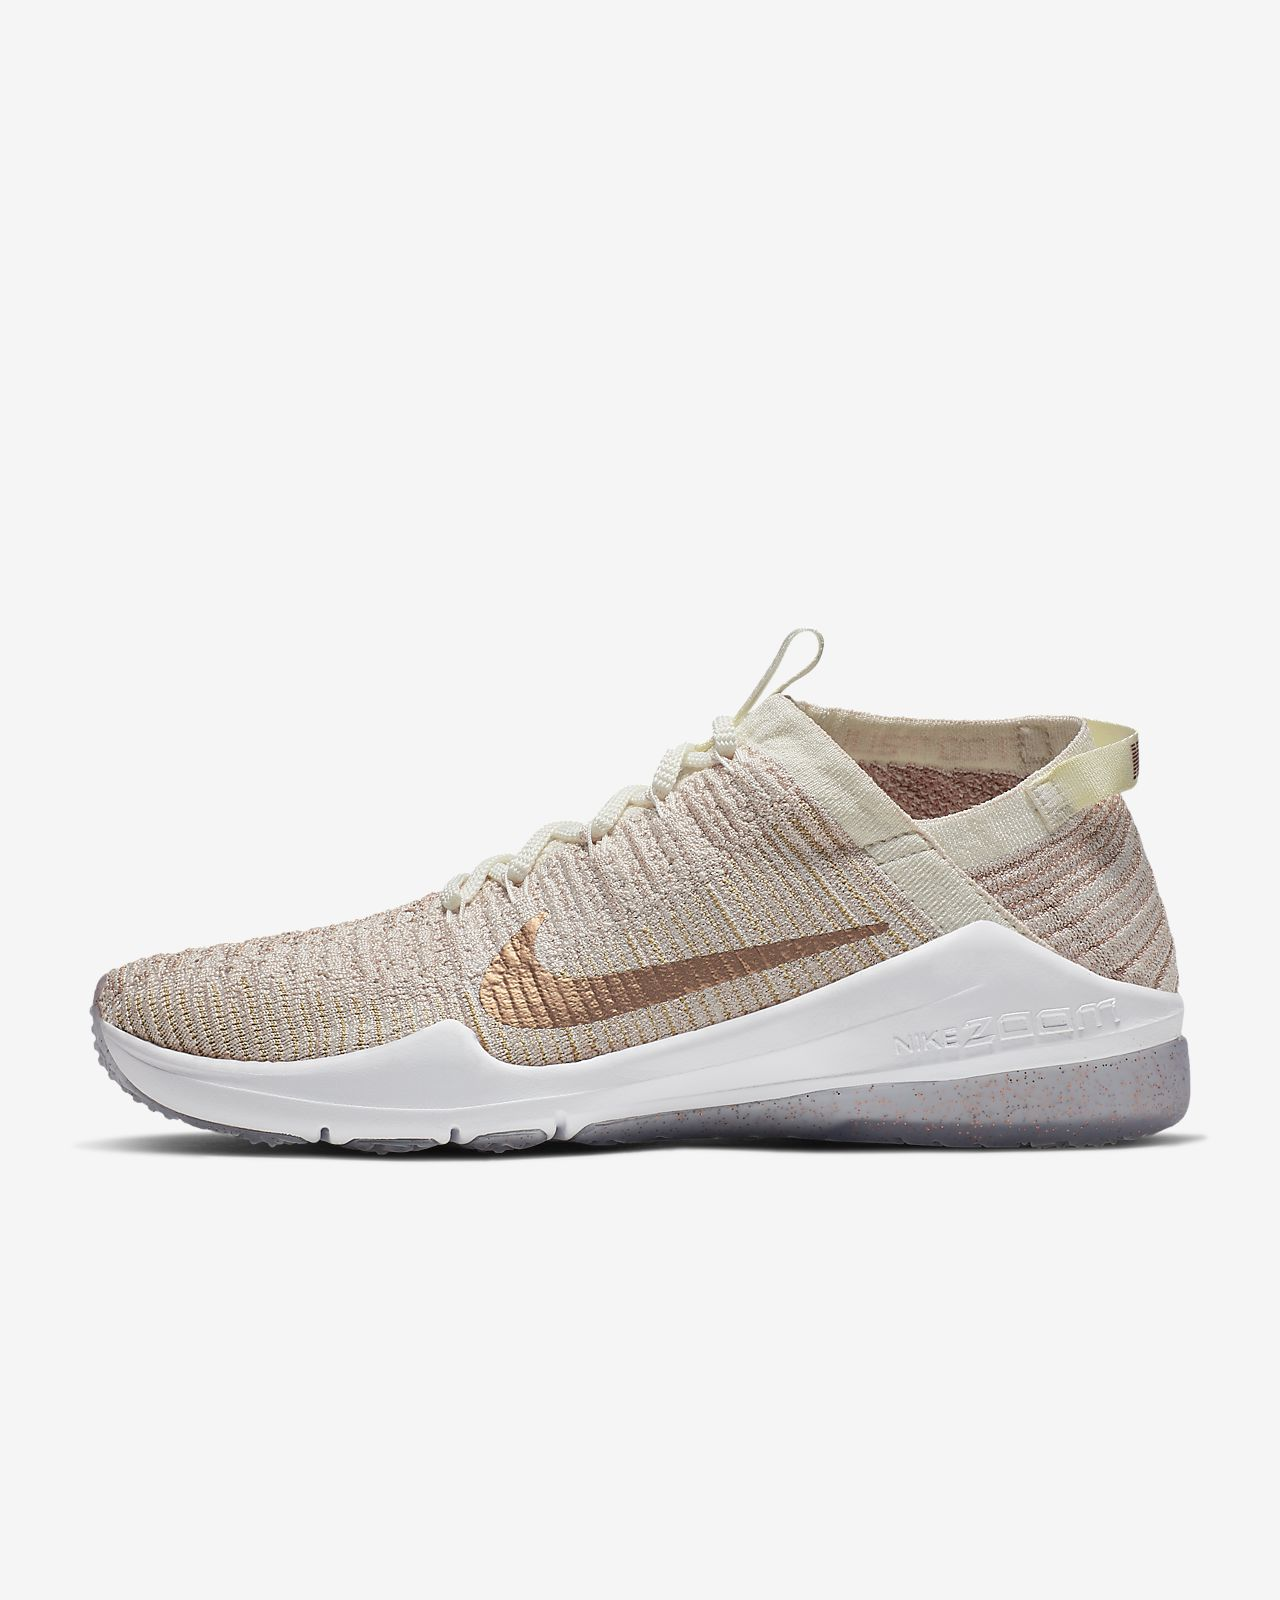 Nike Air Zoom Fearless Flyknit 2 Metallic Damen-Trainingsschuh